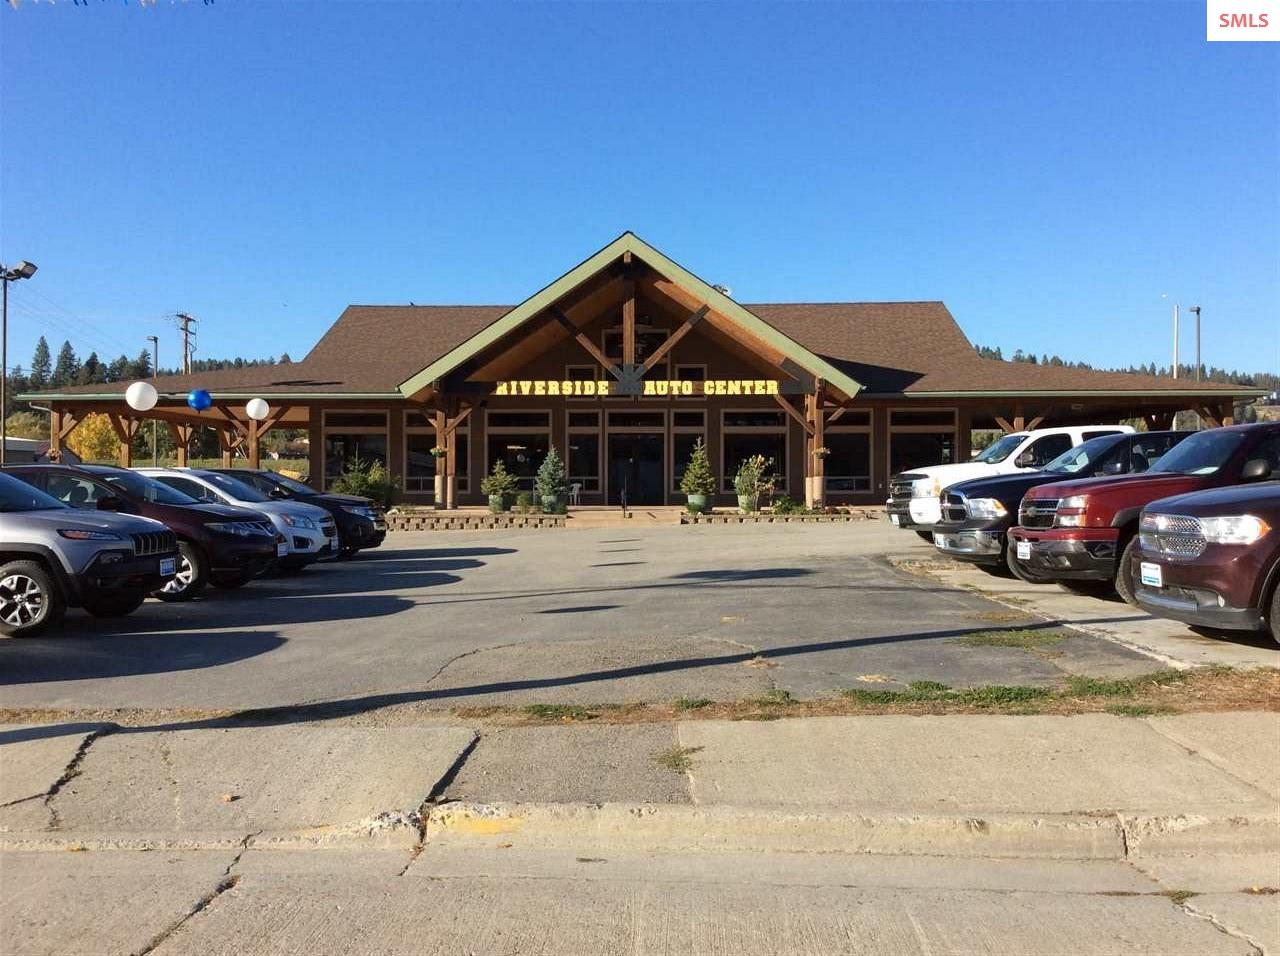 Commercial for Sale at Bonner Street Bonner Street Bonners Ferry, Idaho 83805 United States